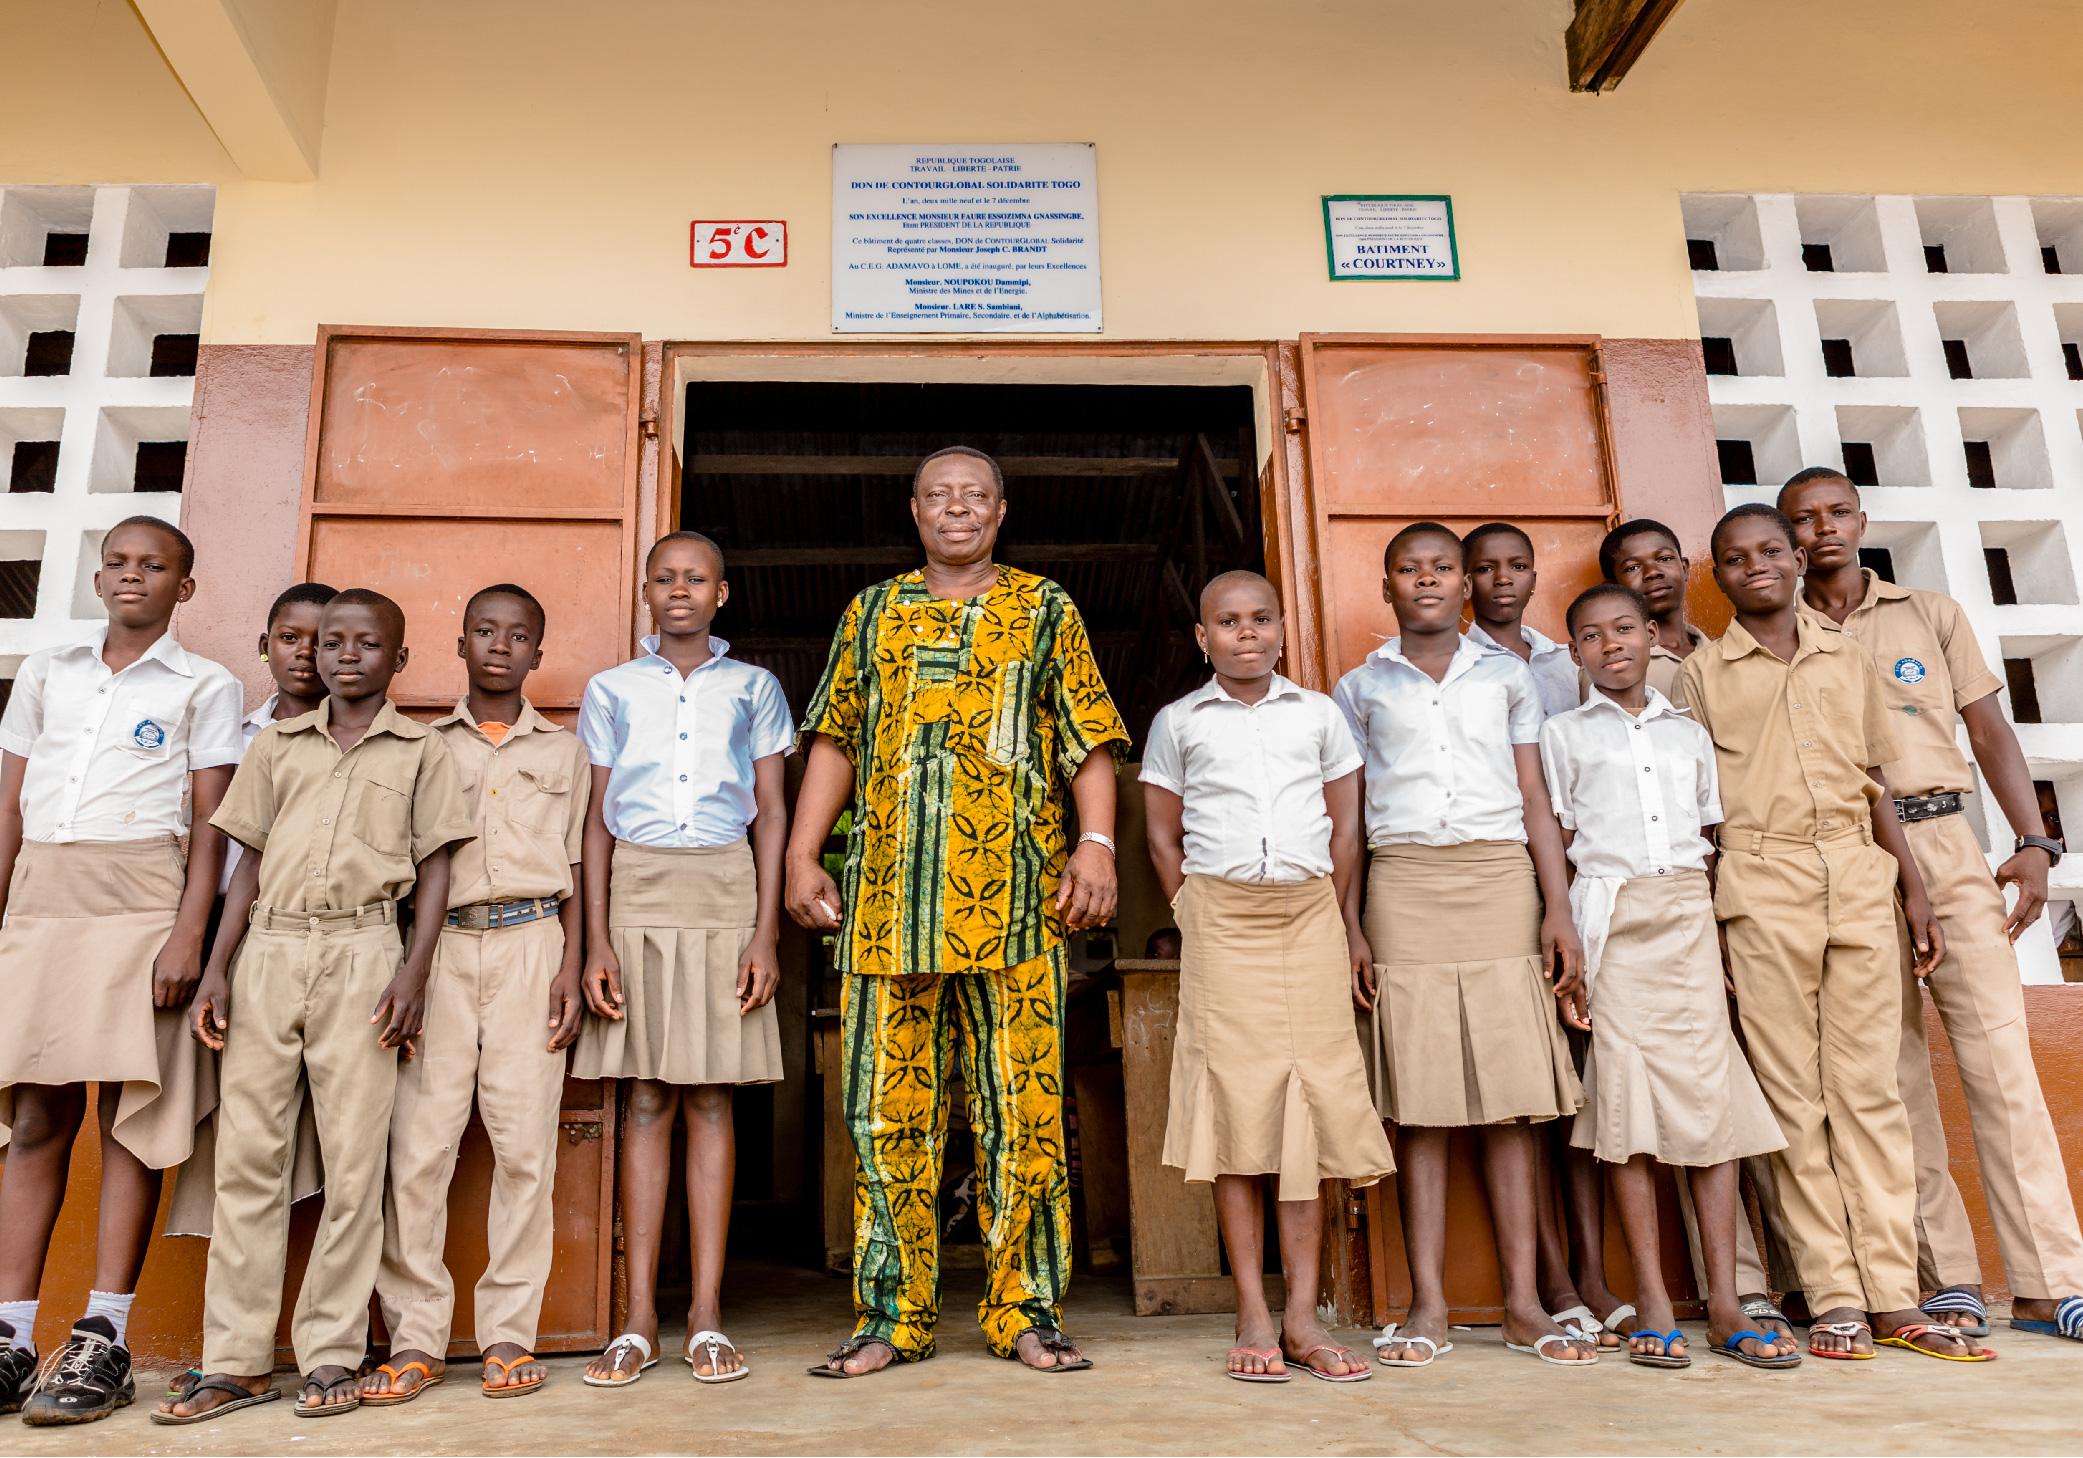 School Headmaster and Students, Lomé, togo